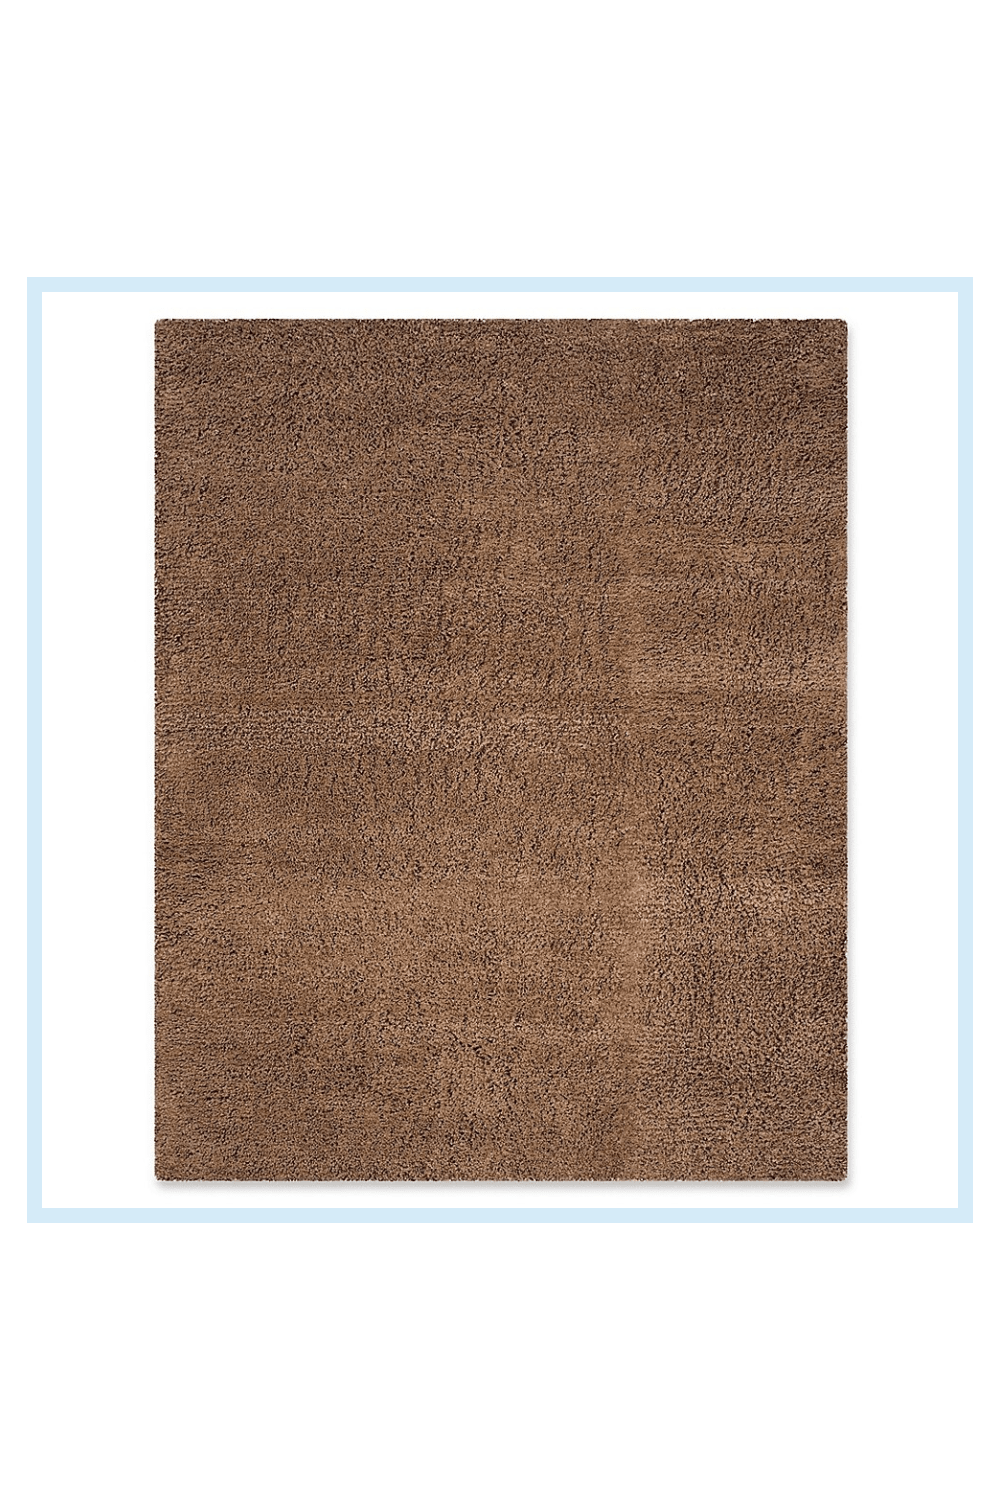 Photo of Safavieh Classic Shag 3-Foot X 5-Foot Napa Rug In Taupe